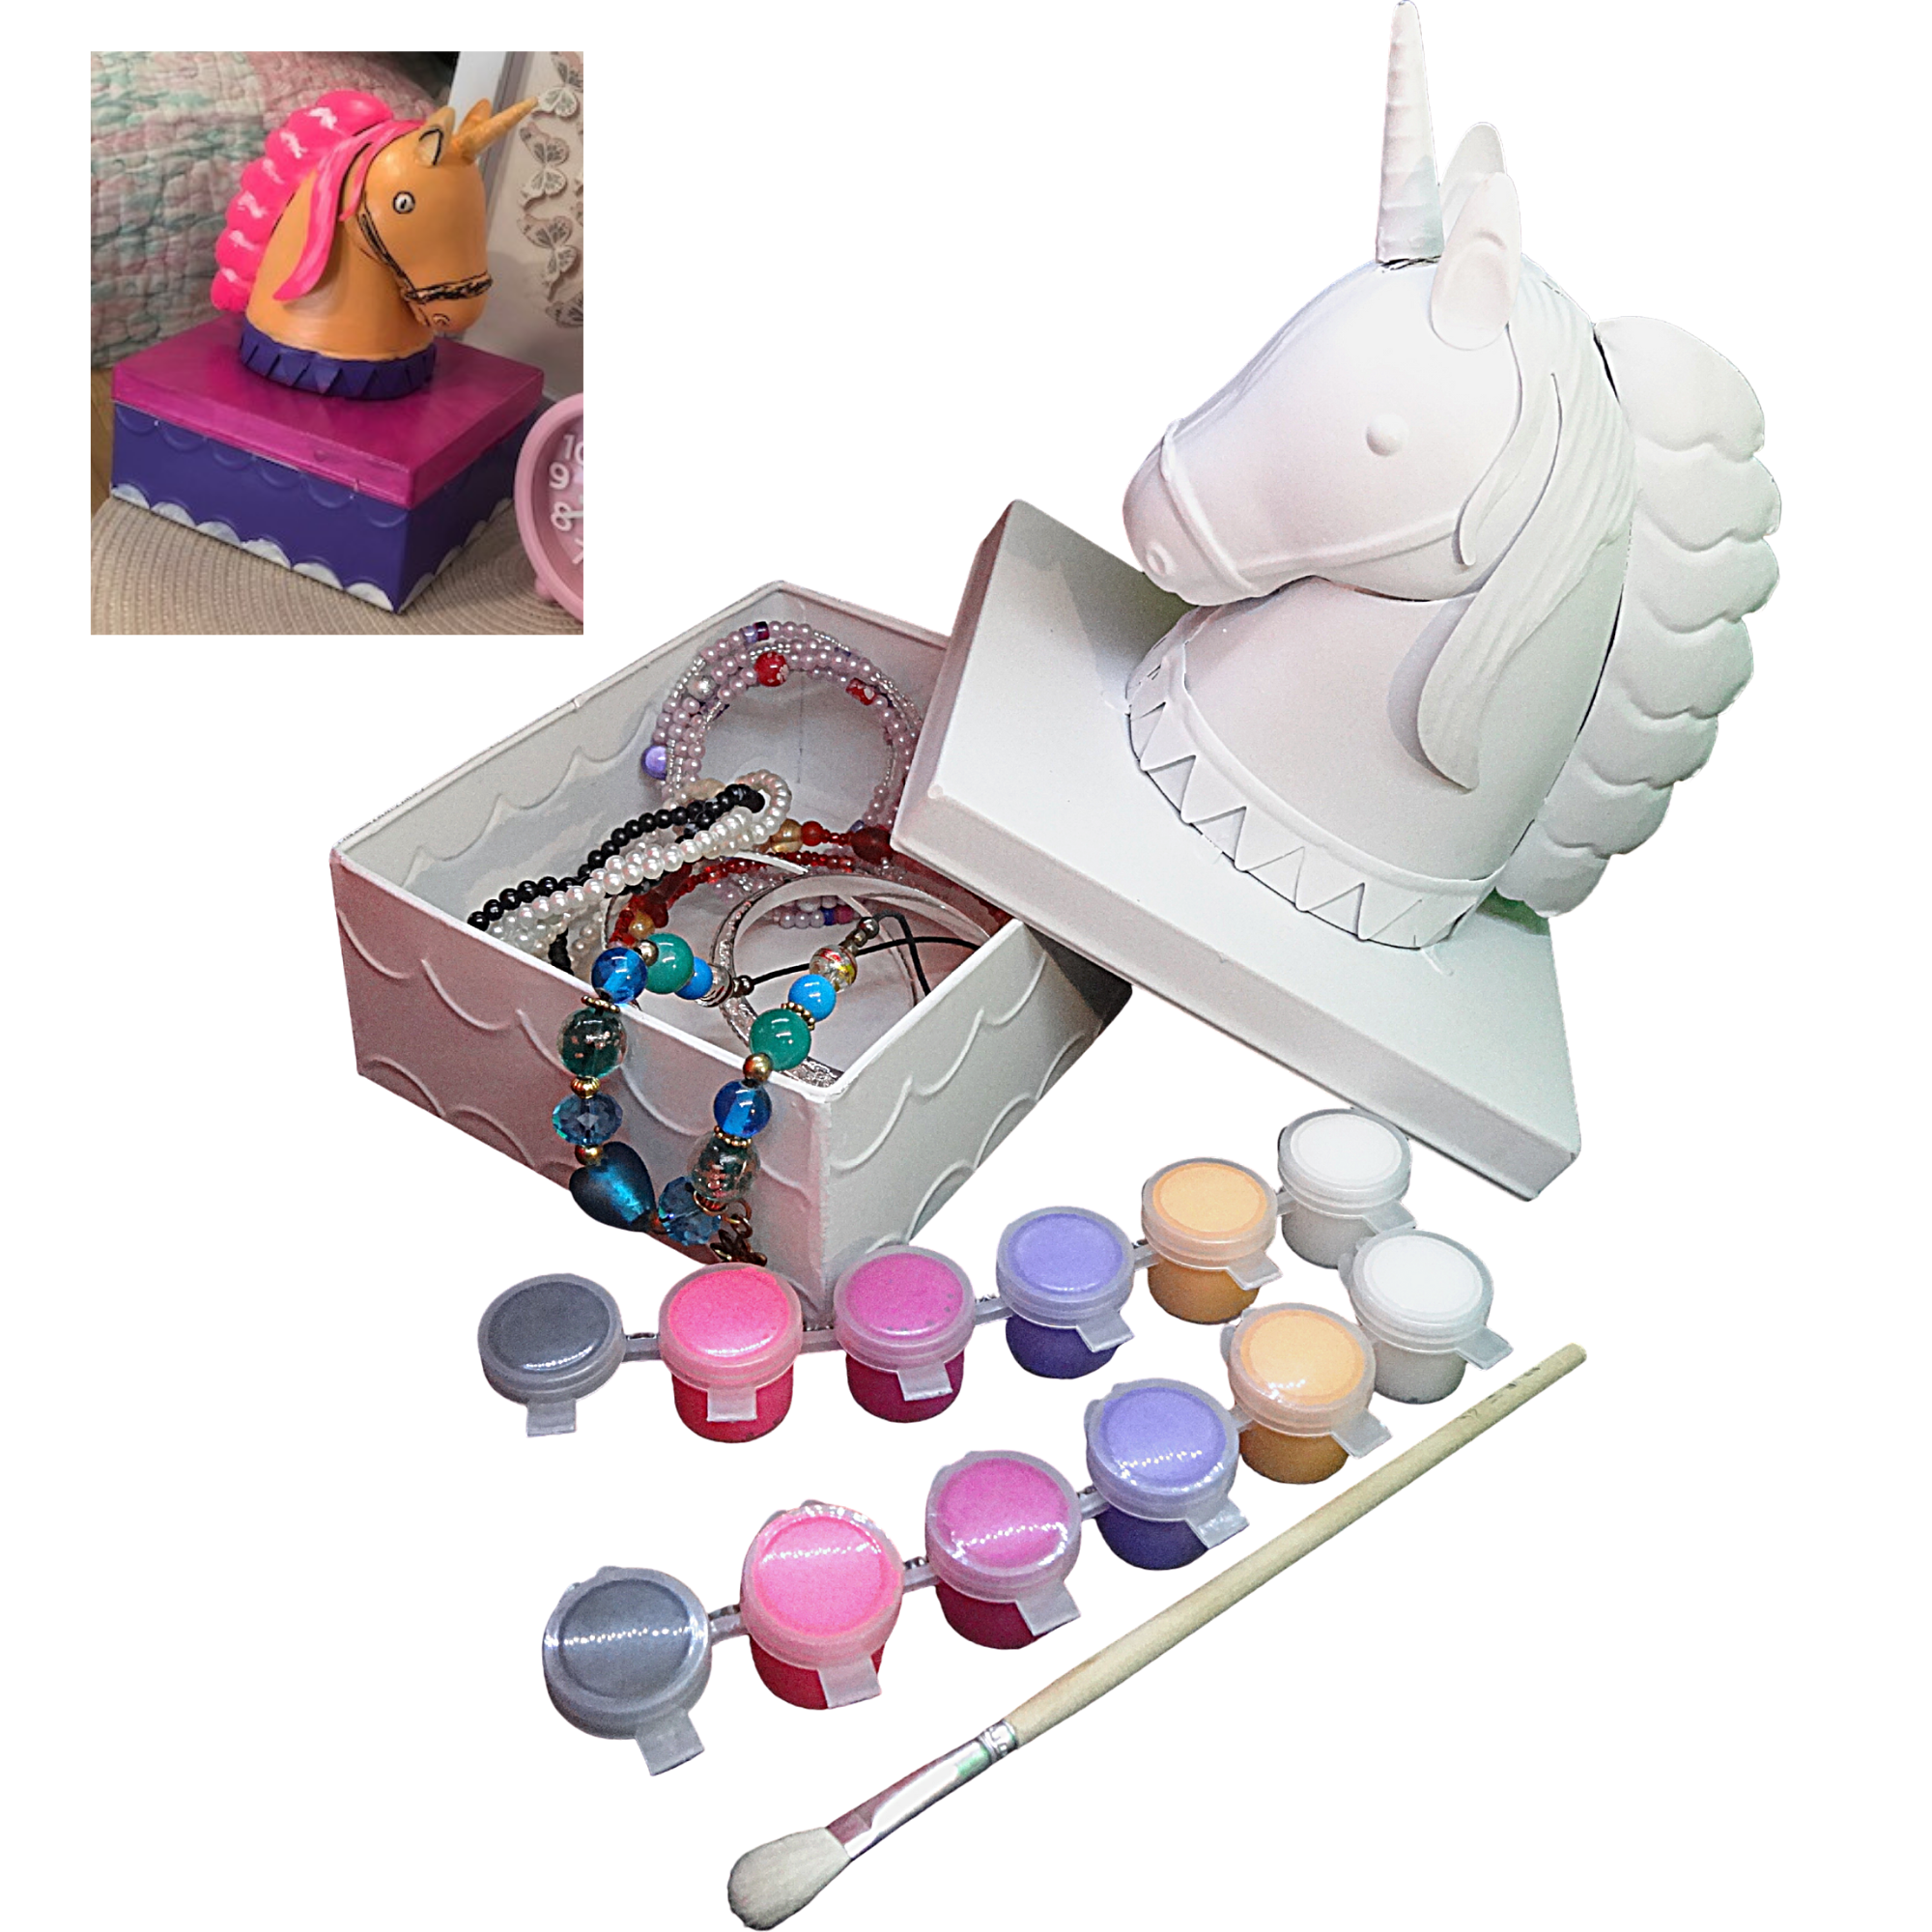 Unicorn Jewelry box for girls Painting Kit – Paint Your Own Unicorn Decor Trinket box for Kids Ages 5+, unicorns gifts for girls, Educational Art Craft girl Gifts by CR8 Outlet,